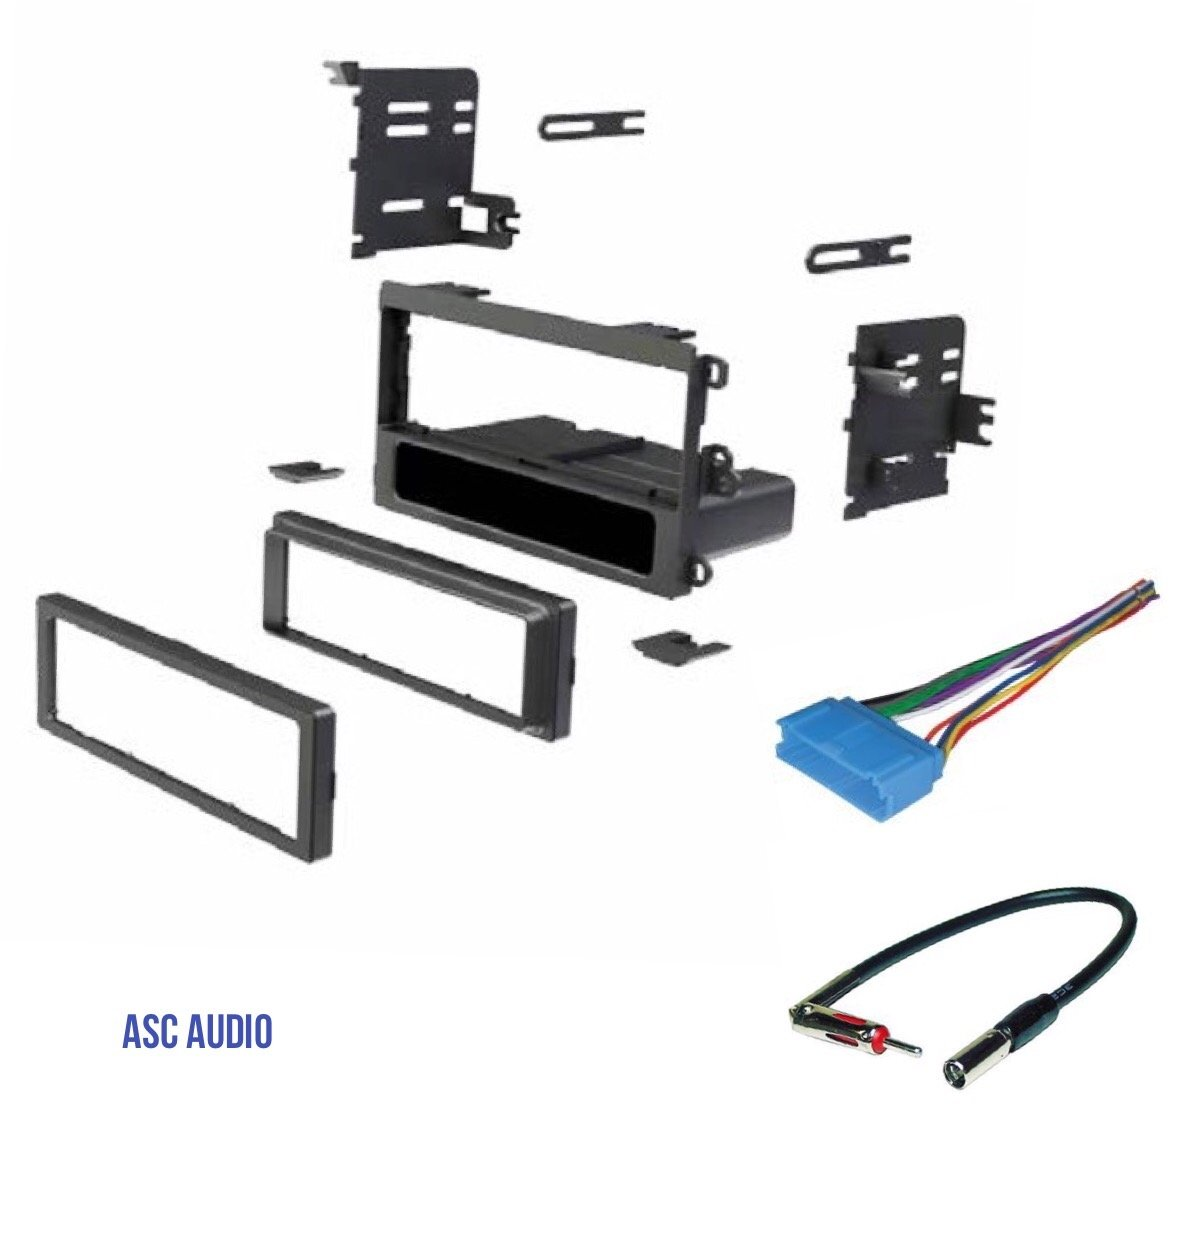 Amazon.com: ASC Car Stereo Dash Kit, Wire Harness, Antenna Adapter for some  Buick 97-03 Century,95-1999 LeSabre, 1995-2004 Park Avenue, 1995-2003  Regal, ...